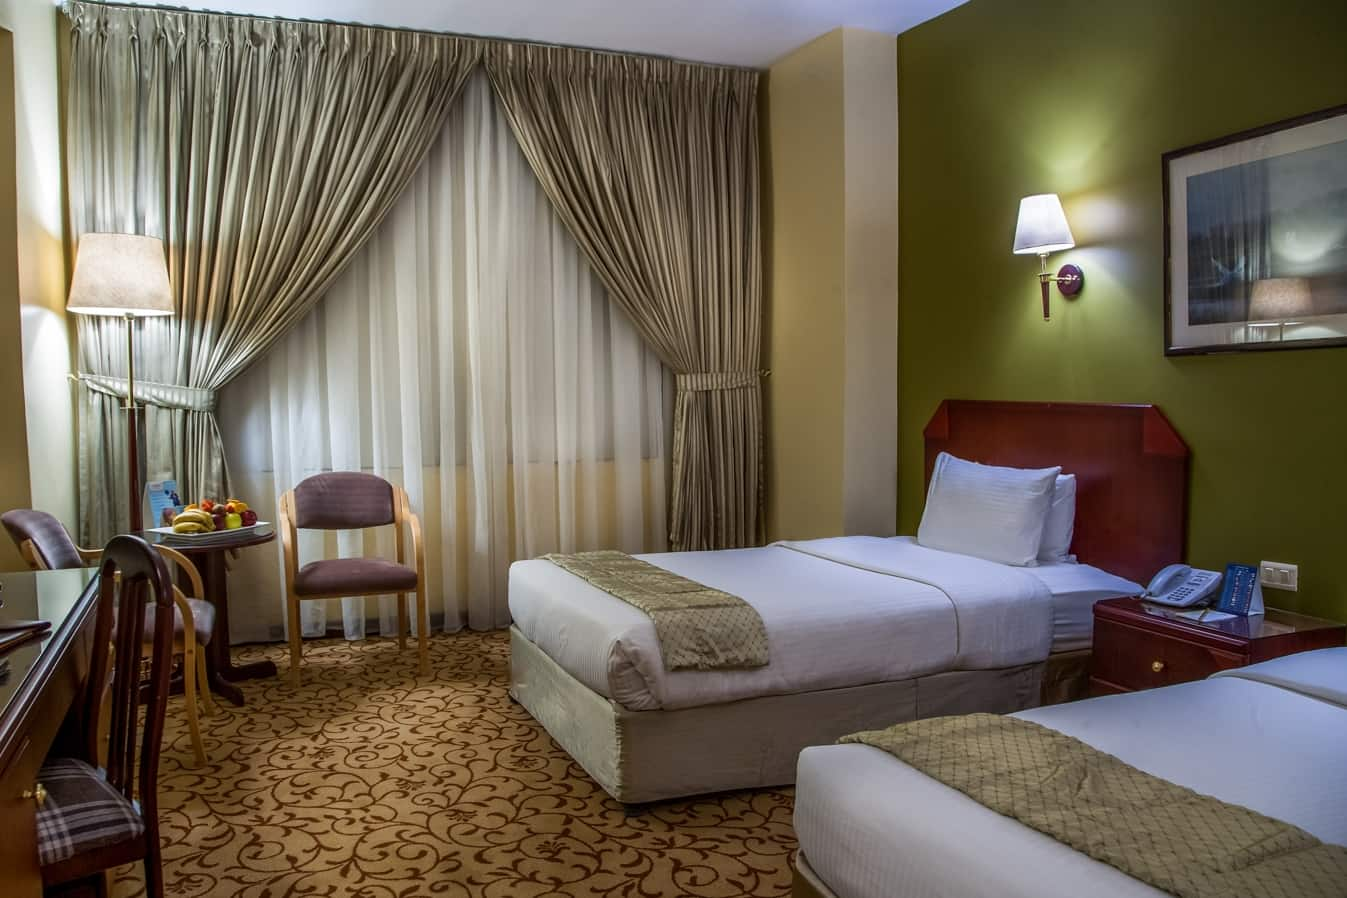 Guest room at the Days Inn Hotel Suites Amman in Amman, Other than US/Canada